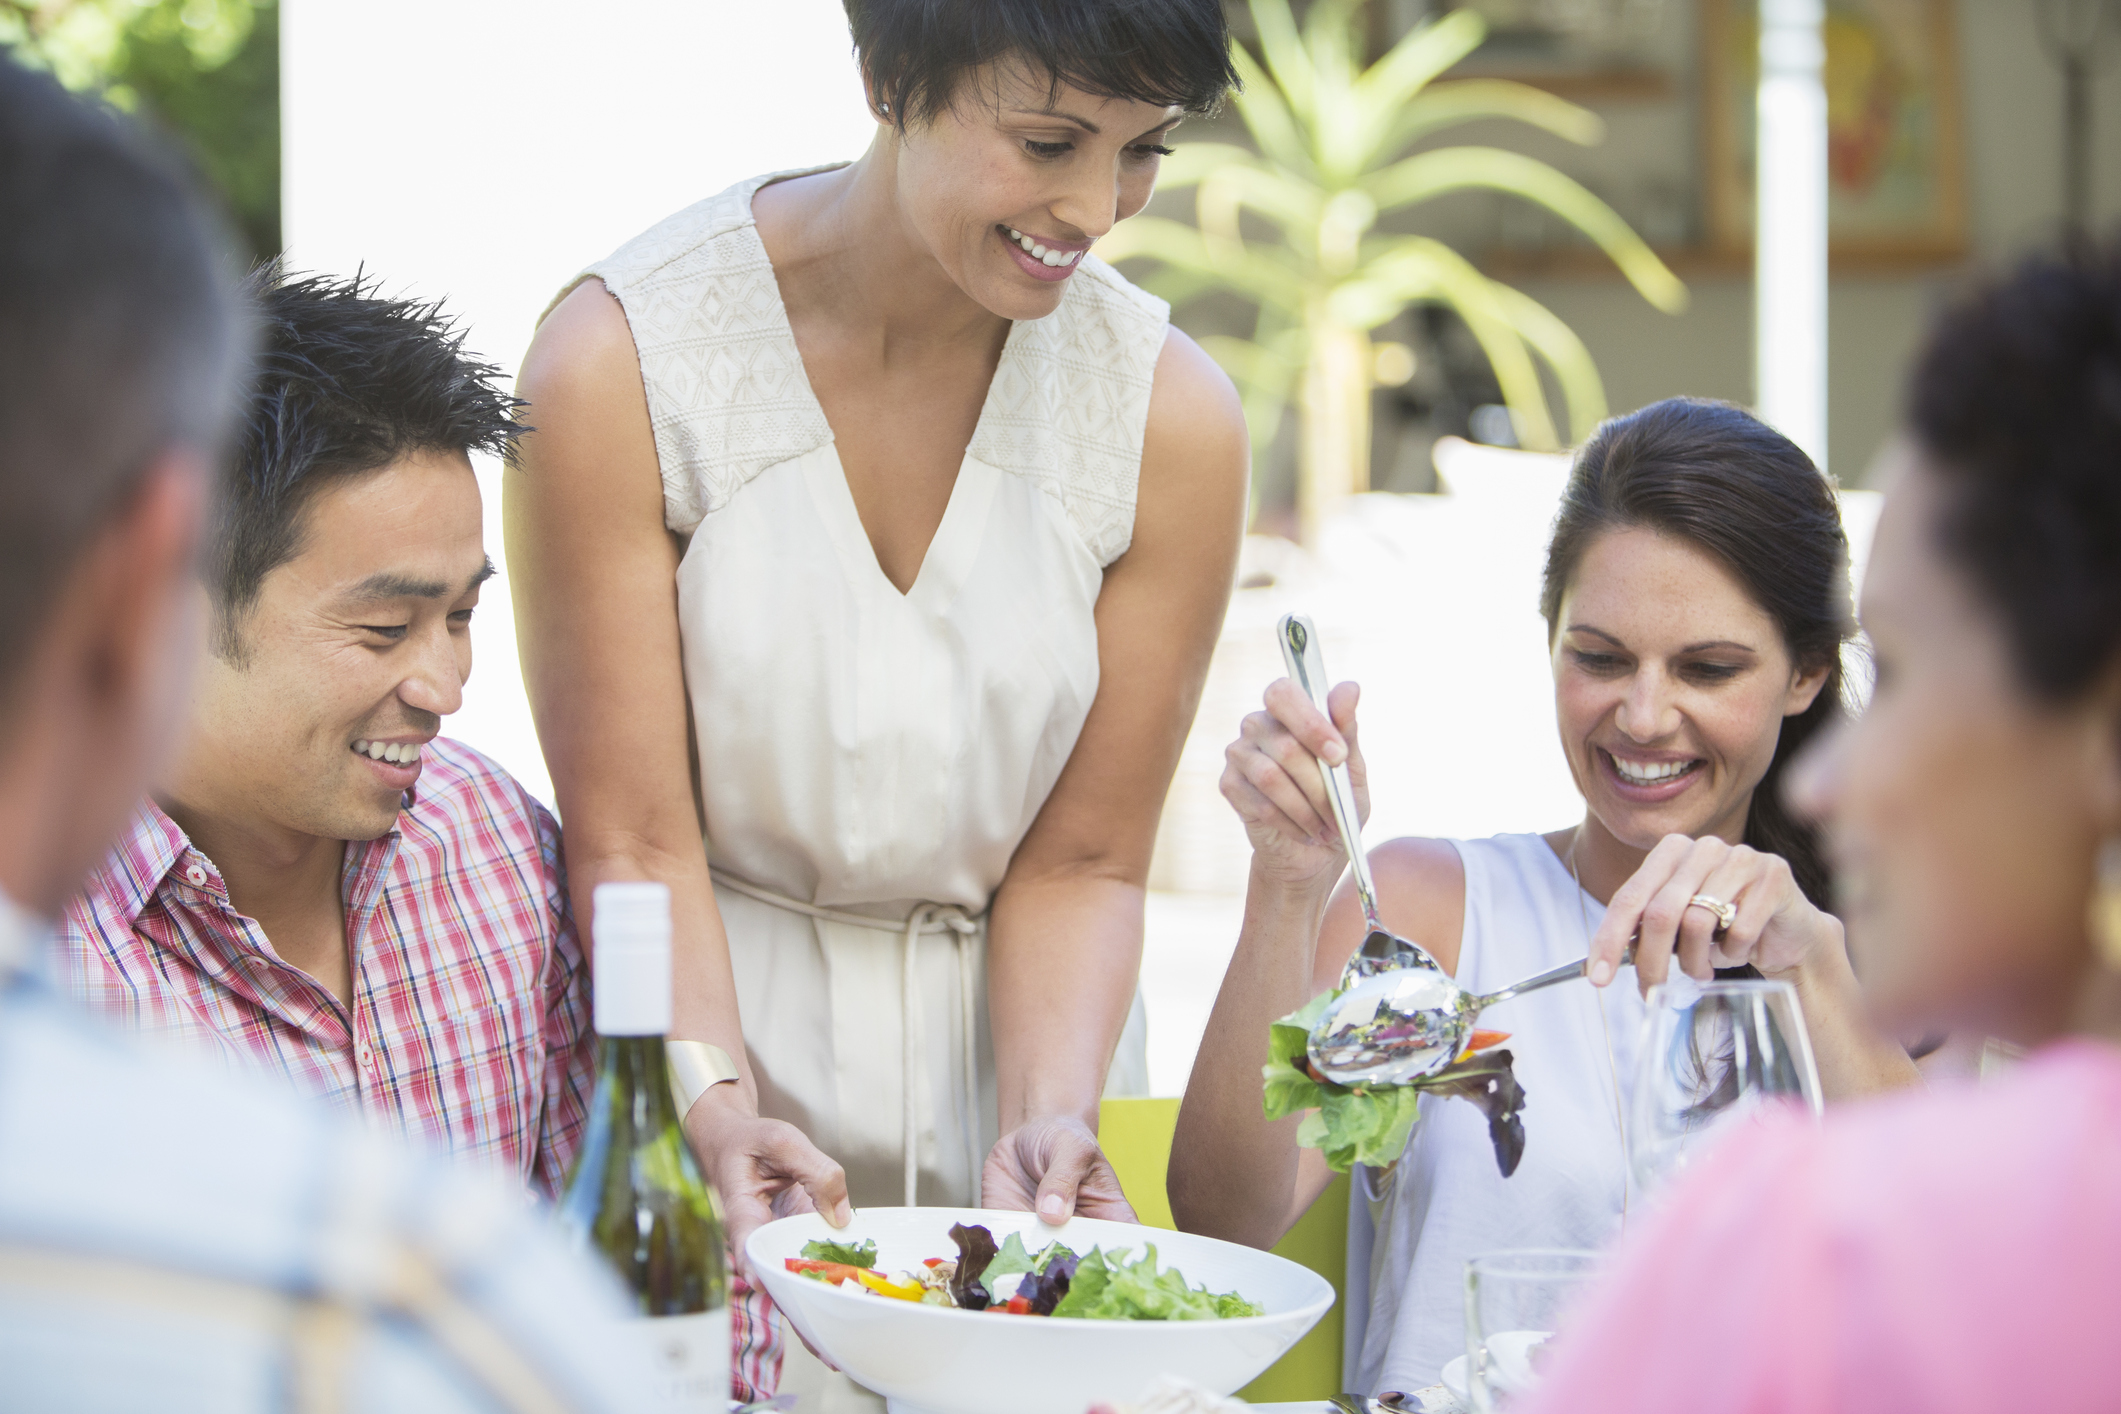 Woman serving friends at table outdoors